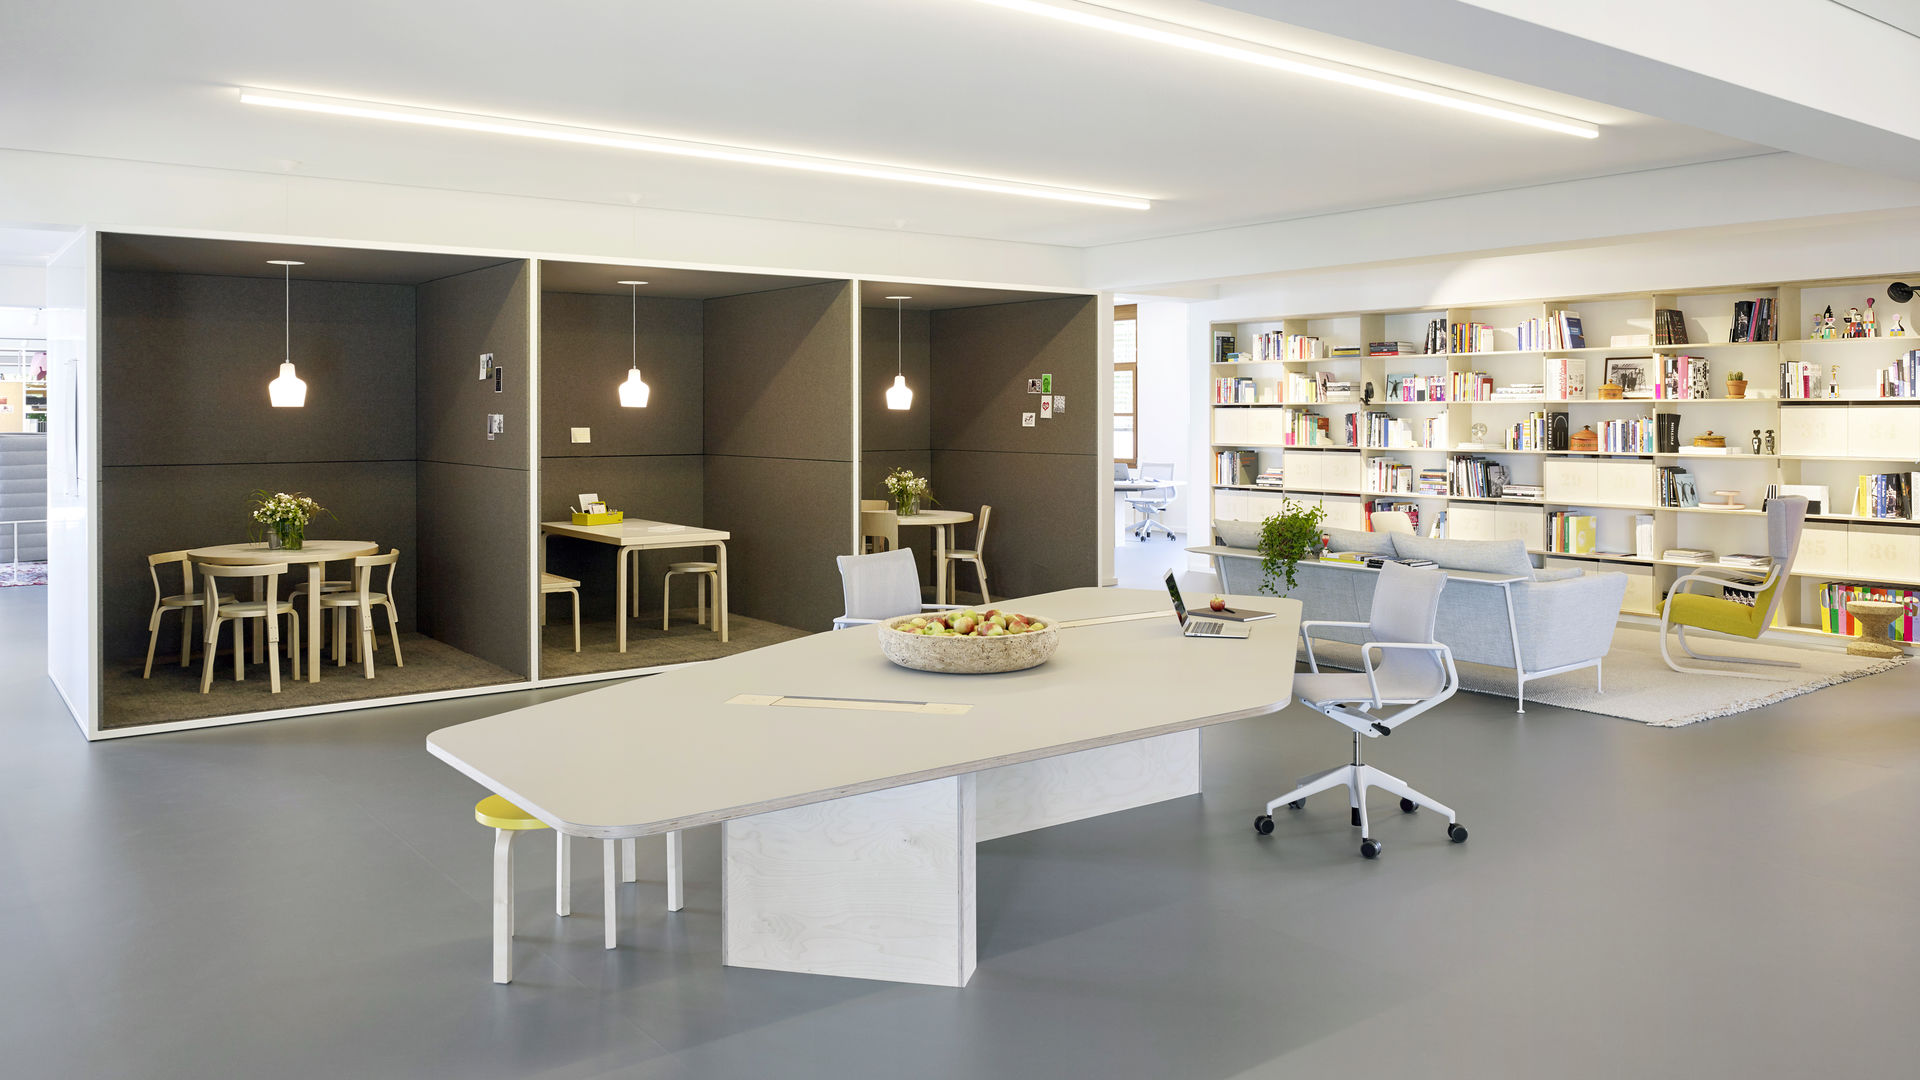 Vitra The Best of Contemporary Design and Craftsmanship - Office Decor vitra Vitra: The Best of Contemporary Design and Craftsmanship Vitra The Best of Contemporary Design and Craftsmanship Office Decor